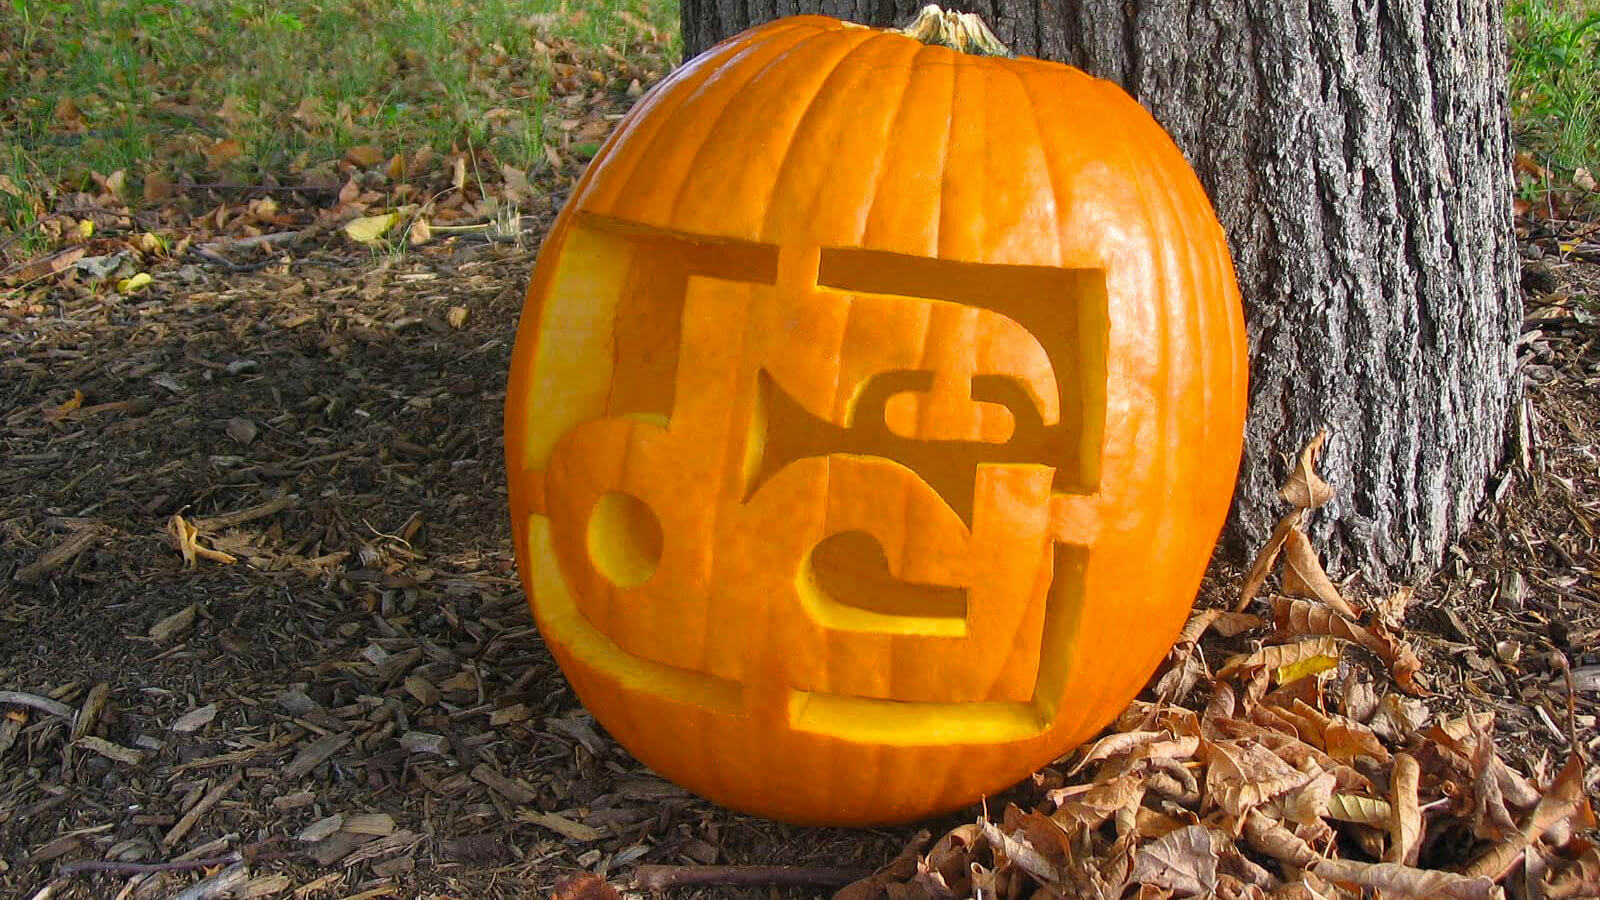 48 pumpkin templates to make Halloween all about drum corps